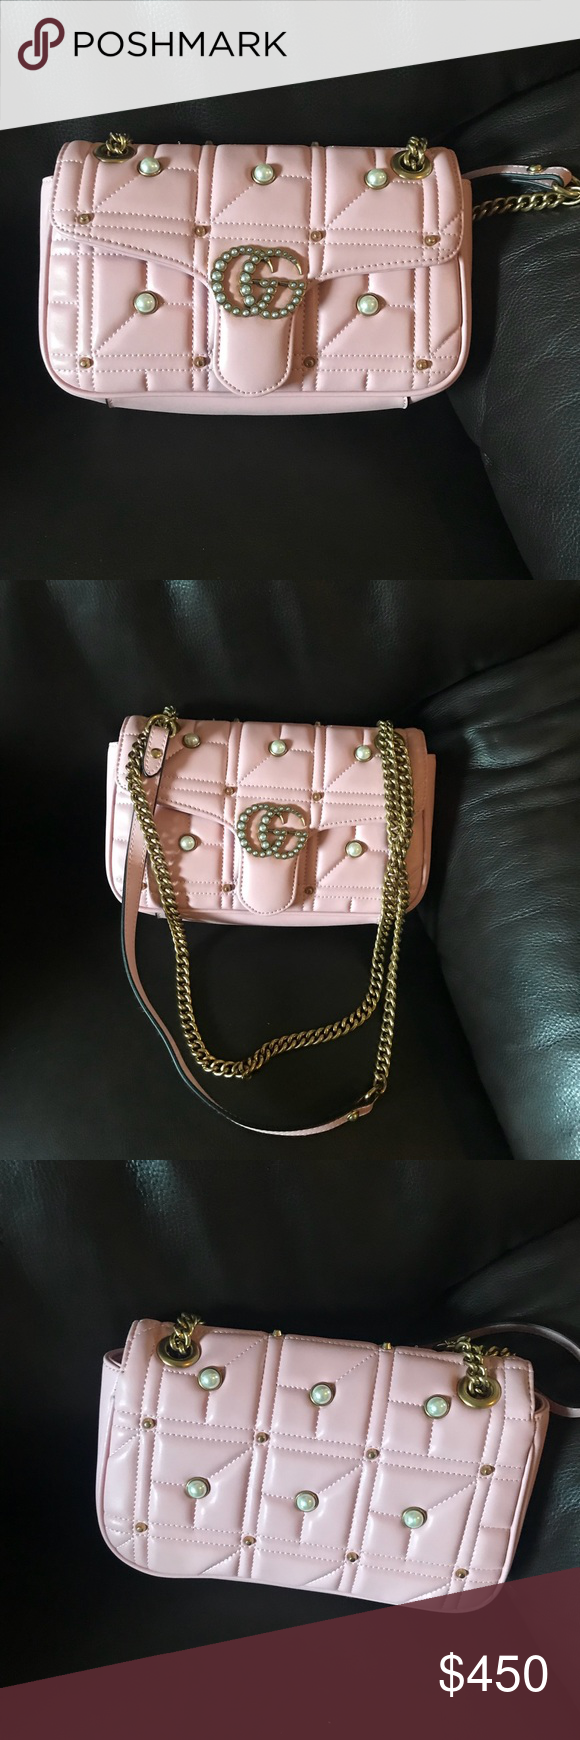 796efee57 Gucci GG Marmont Pearl Pink Nude Small Light pink nude Gucci matelassé leather  shoulder bag with